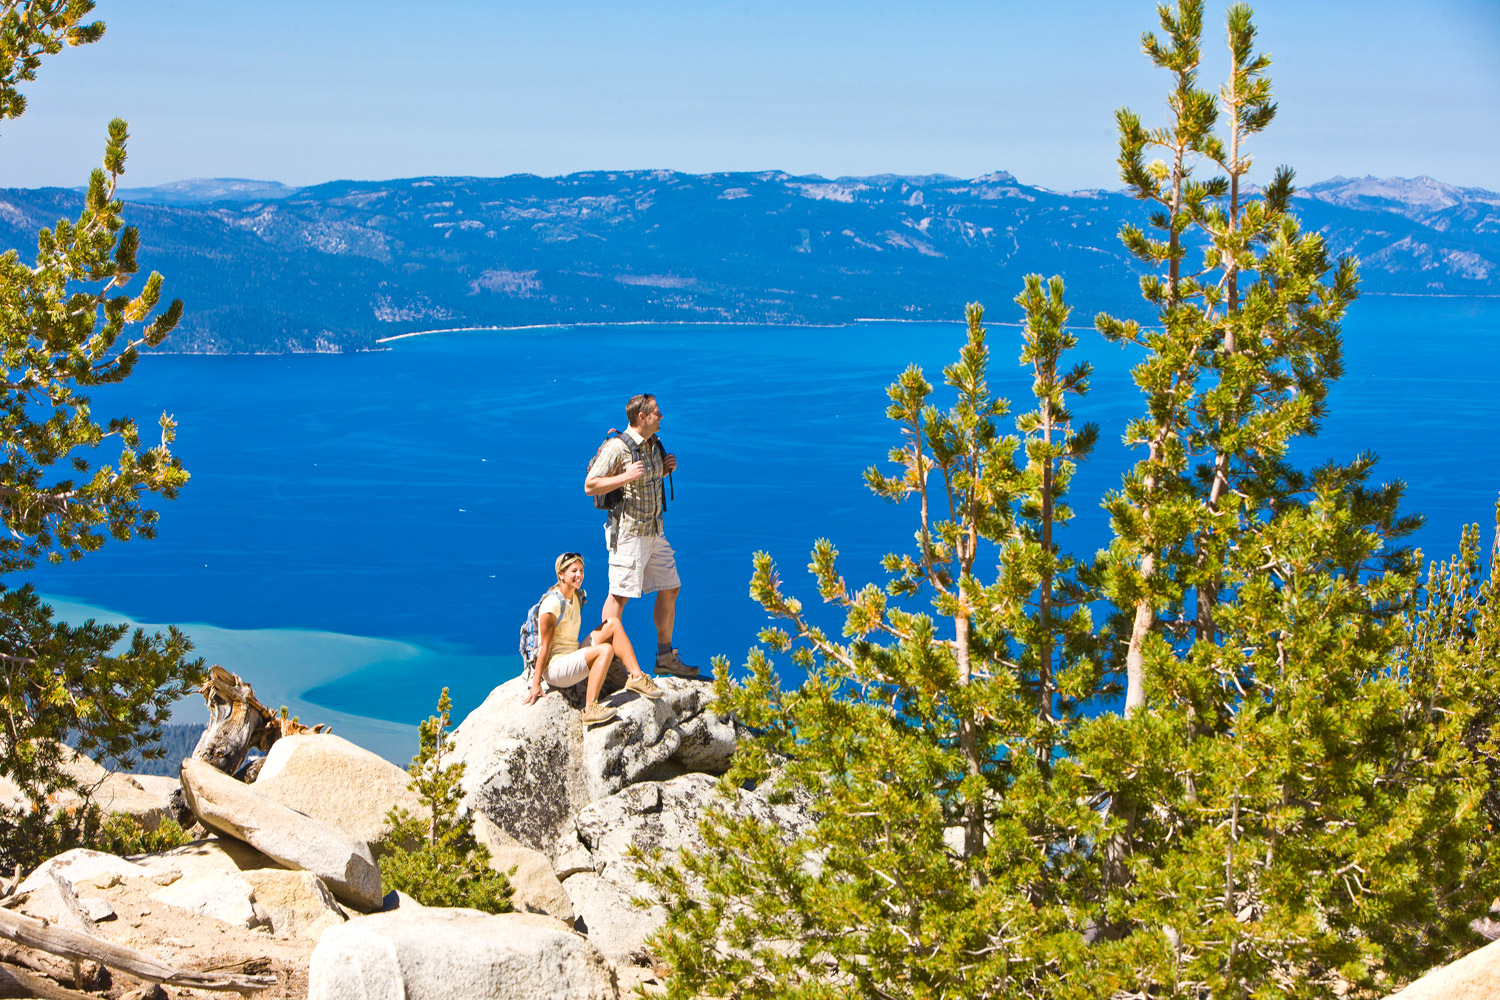 Lake tahoe ca family vacations trips getaways for families family vacation critic